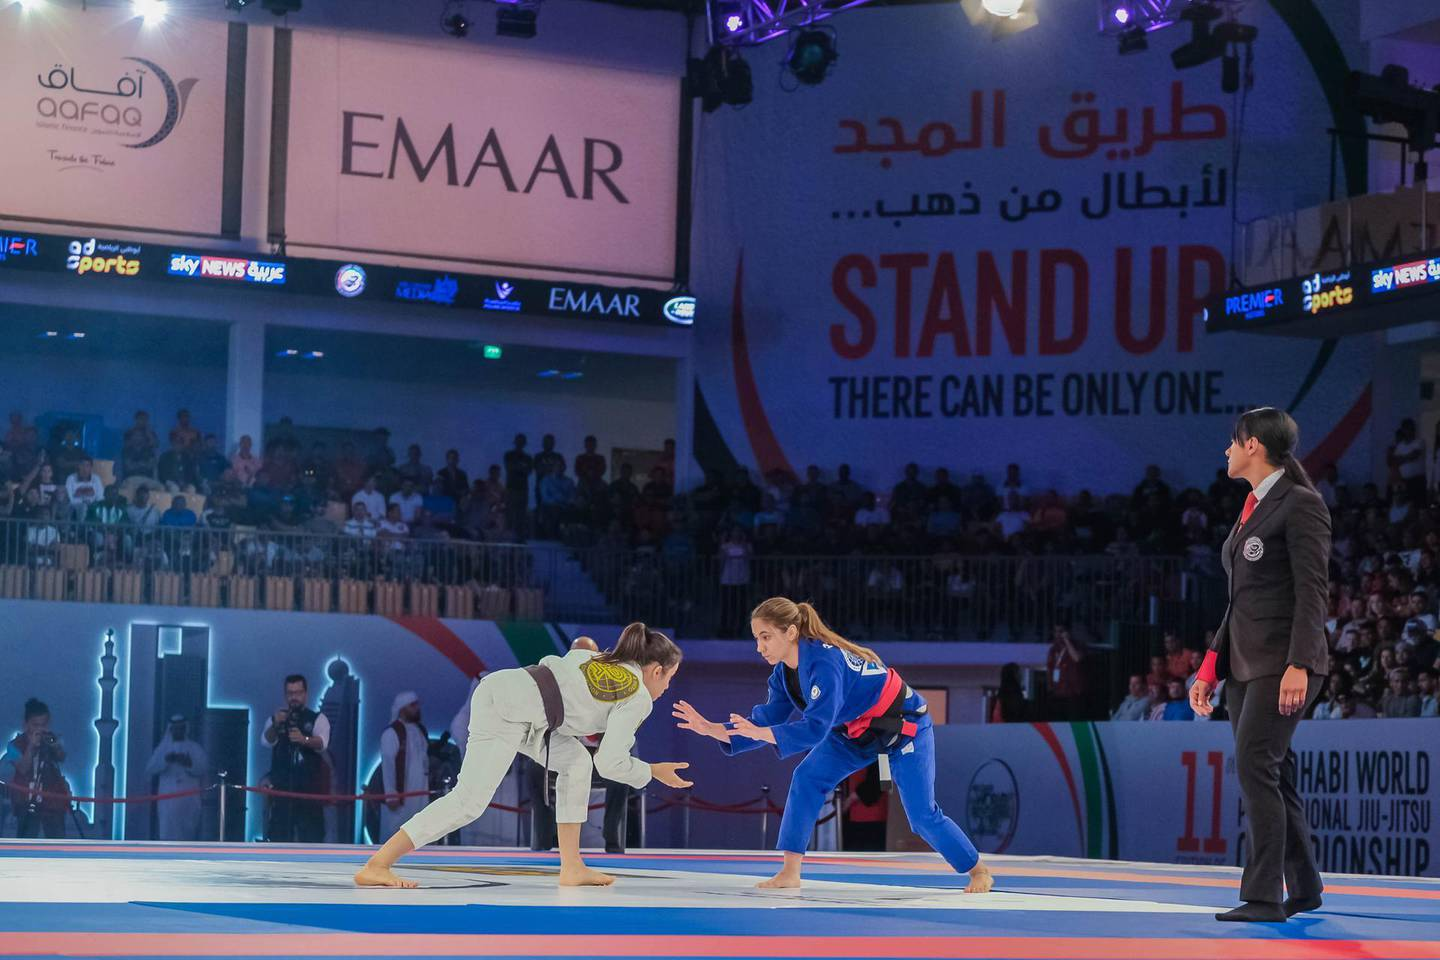 he 12th edition of the Abu Dhabi World Professional Jiu-Jitsu Championship (ADWPJJC) will be held under the patronage of His Highness Sheikh Mohamed Bin Zayed Al Nahyan, Crown Prince of Abu Dhabi and Deputy Supreme Commander of the UAE Armed Forces, from April 6-9 at Abu Dhabi's Jiu-Jitsu Arena.